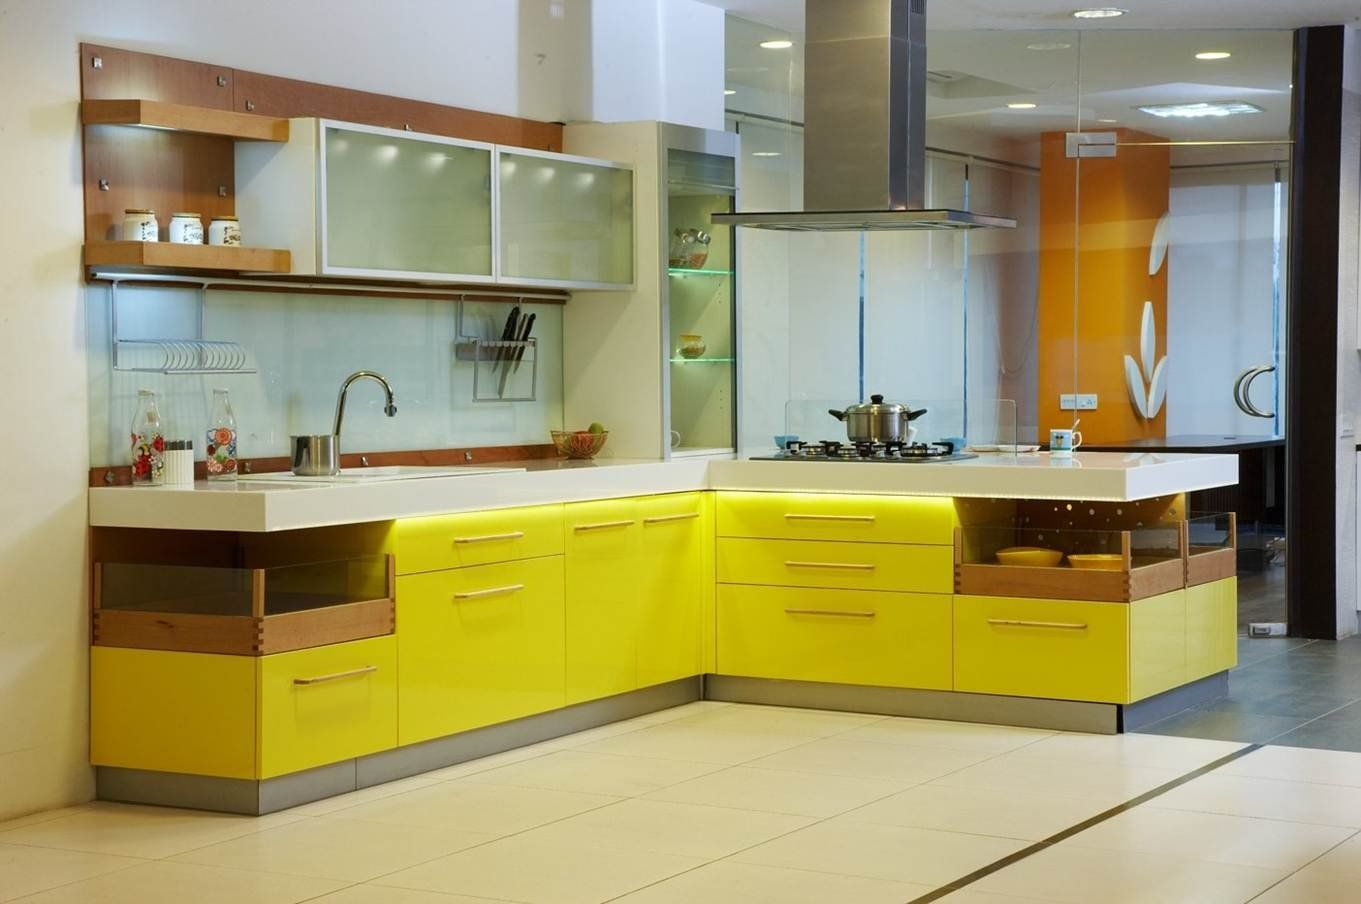 martinkeeis.me] 100+ Modular Kitchen Designs In Chennai Images ...